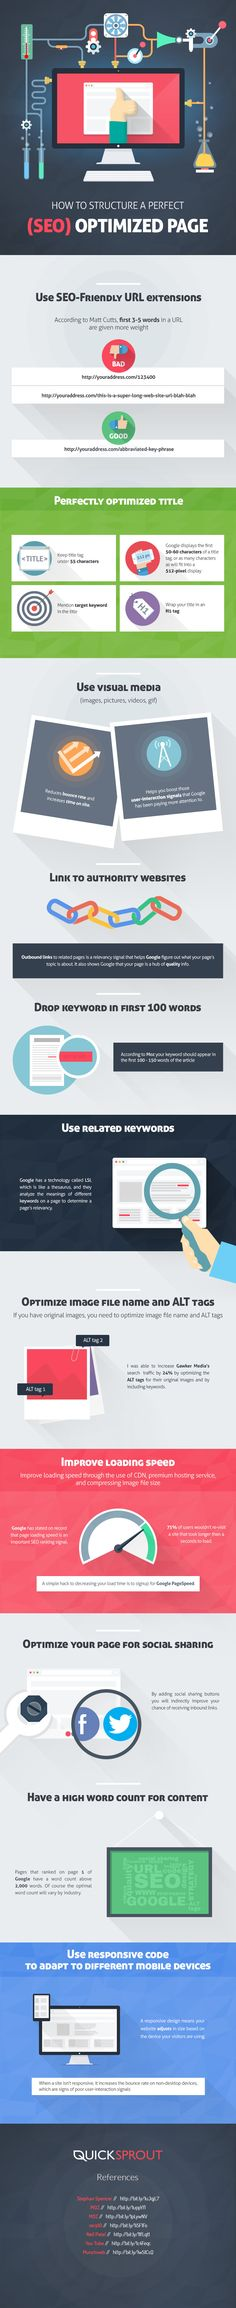 How to Structure a Perfect #SEO Optimized Page - #infographic